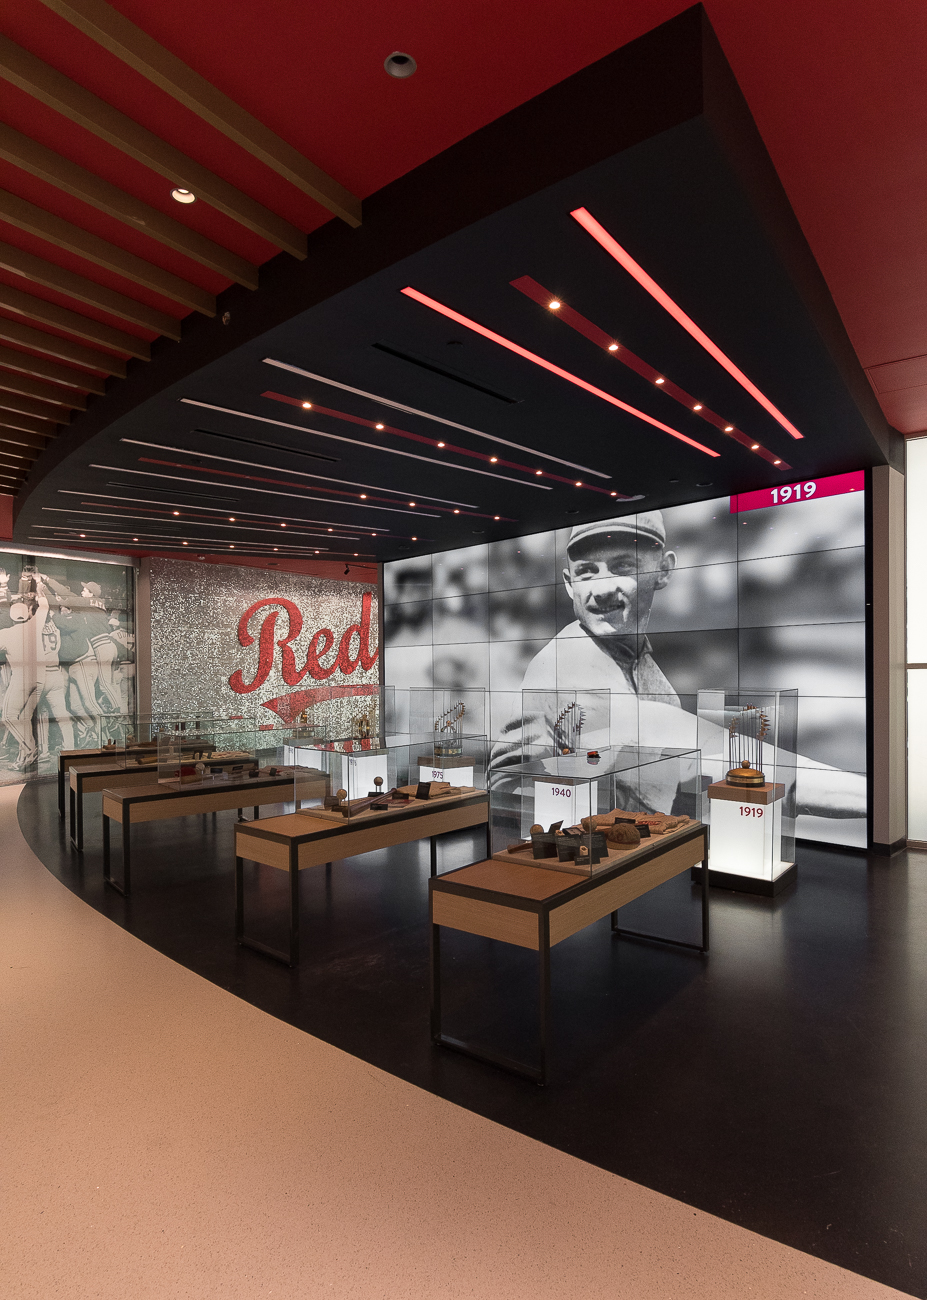 The Reds won World Series titles in 1919, 1940, 1975, 1976, and 1990. Each World Series win is represented in a large room at the end of the Hall of Fame Museum. That spacious room is also now rentable by the public to host private events. / Image: Phil Armstrong, Cincinnati Refined // Published: 4.20.19